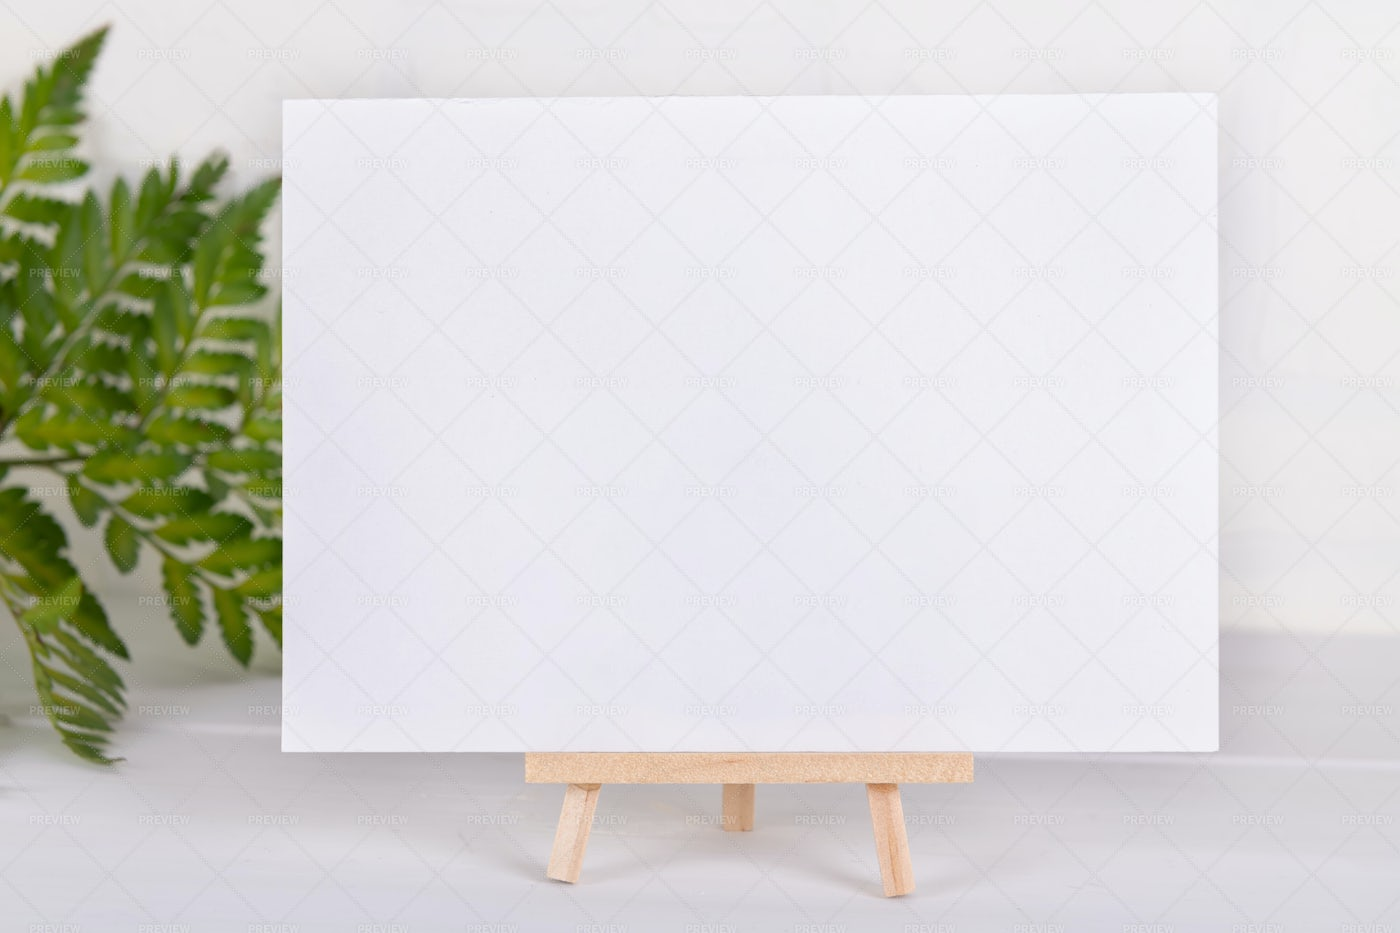 Empty Card With Fern Plant: Stock Photos